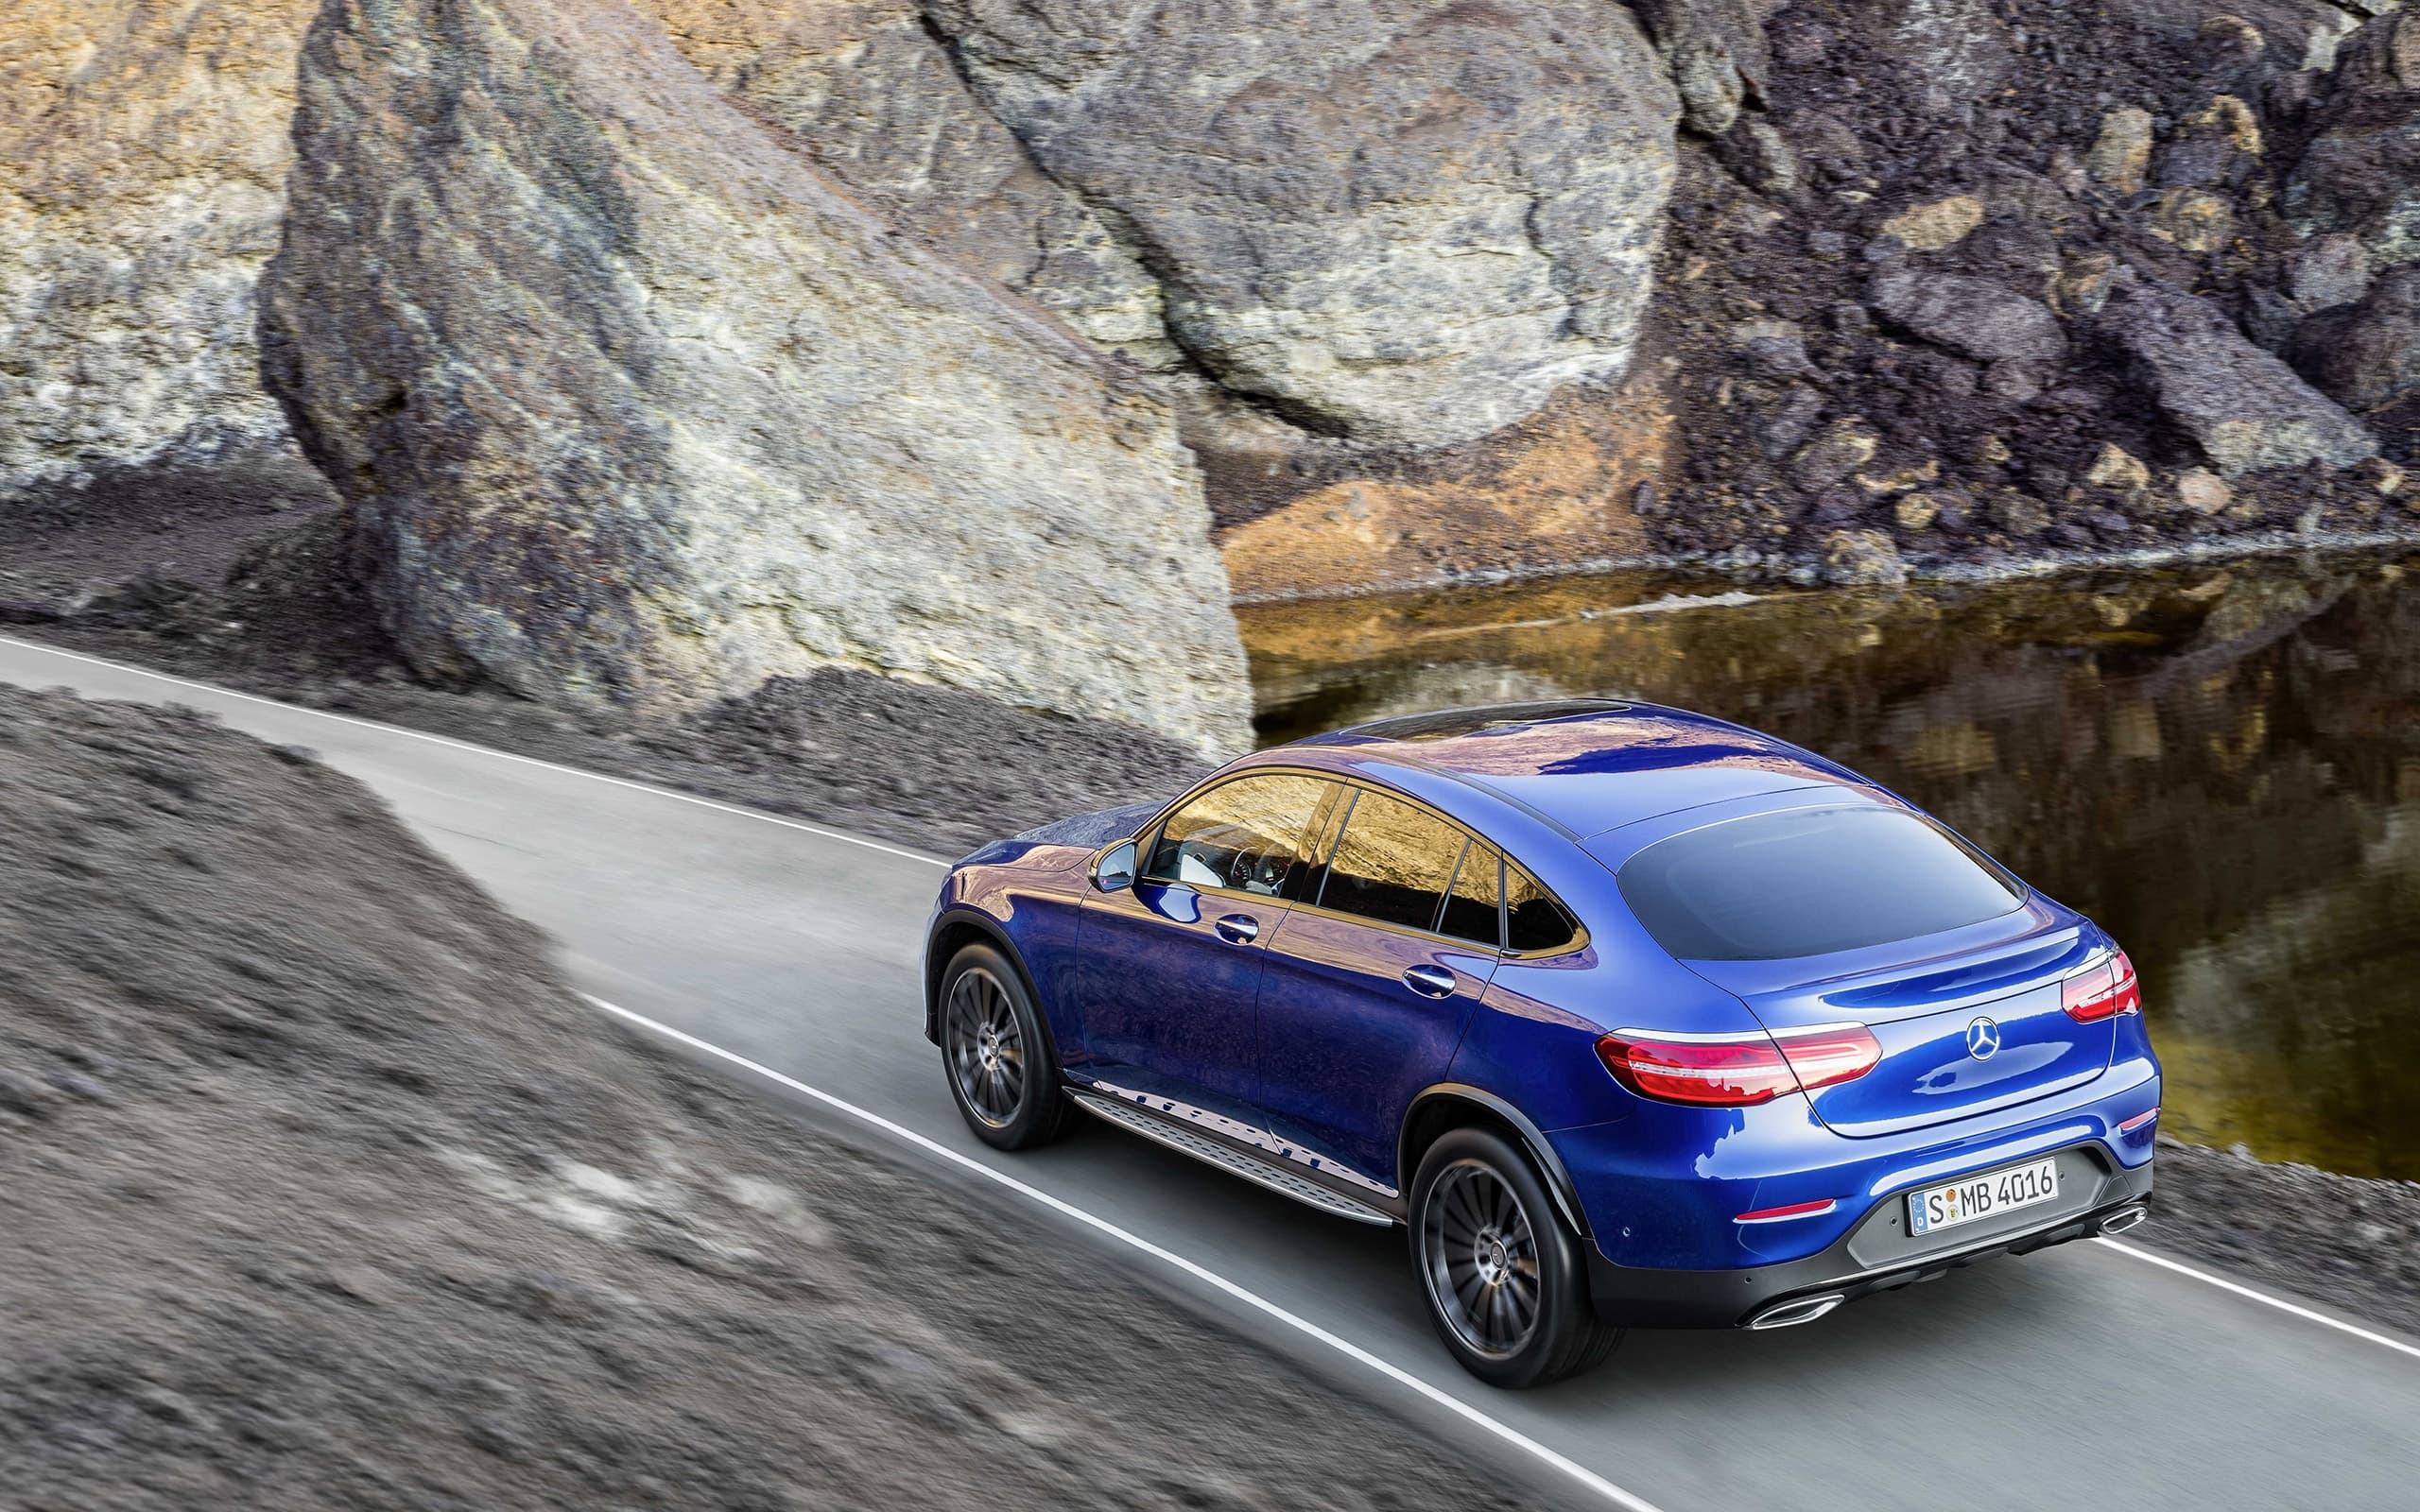 2016 Mercedes-Benz GLC Coupe Widescreen Wallpaper, motion